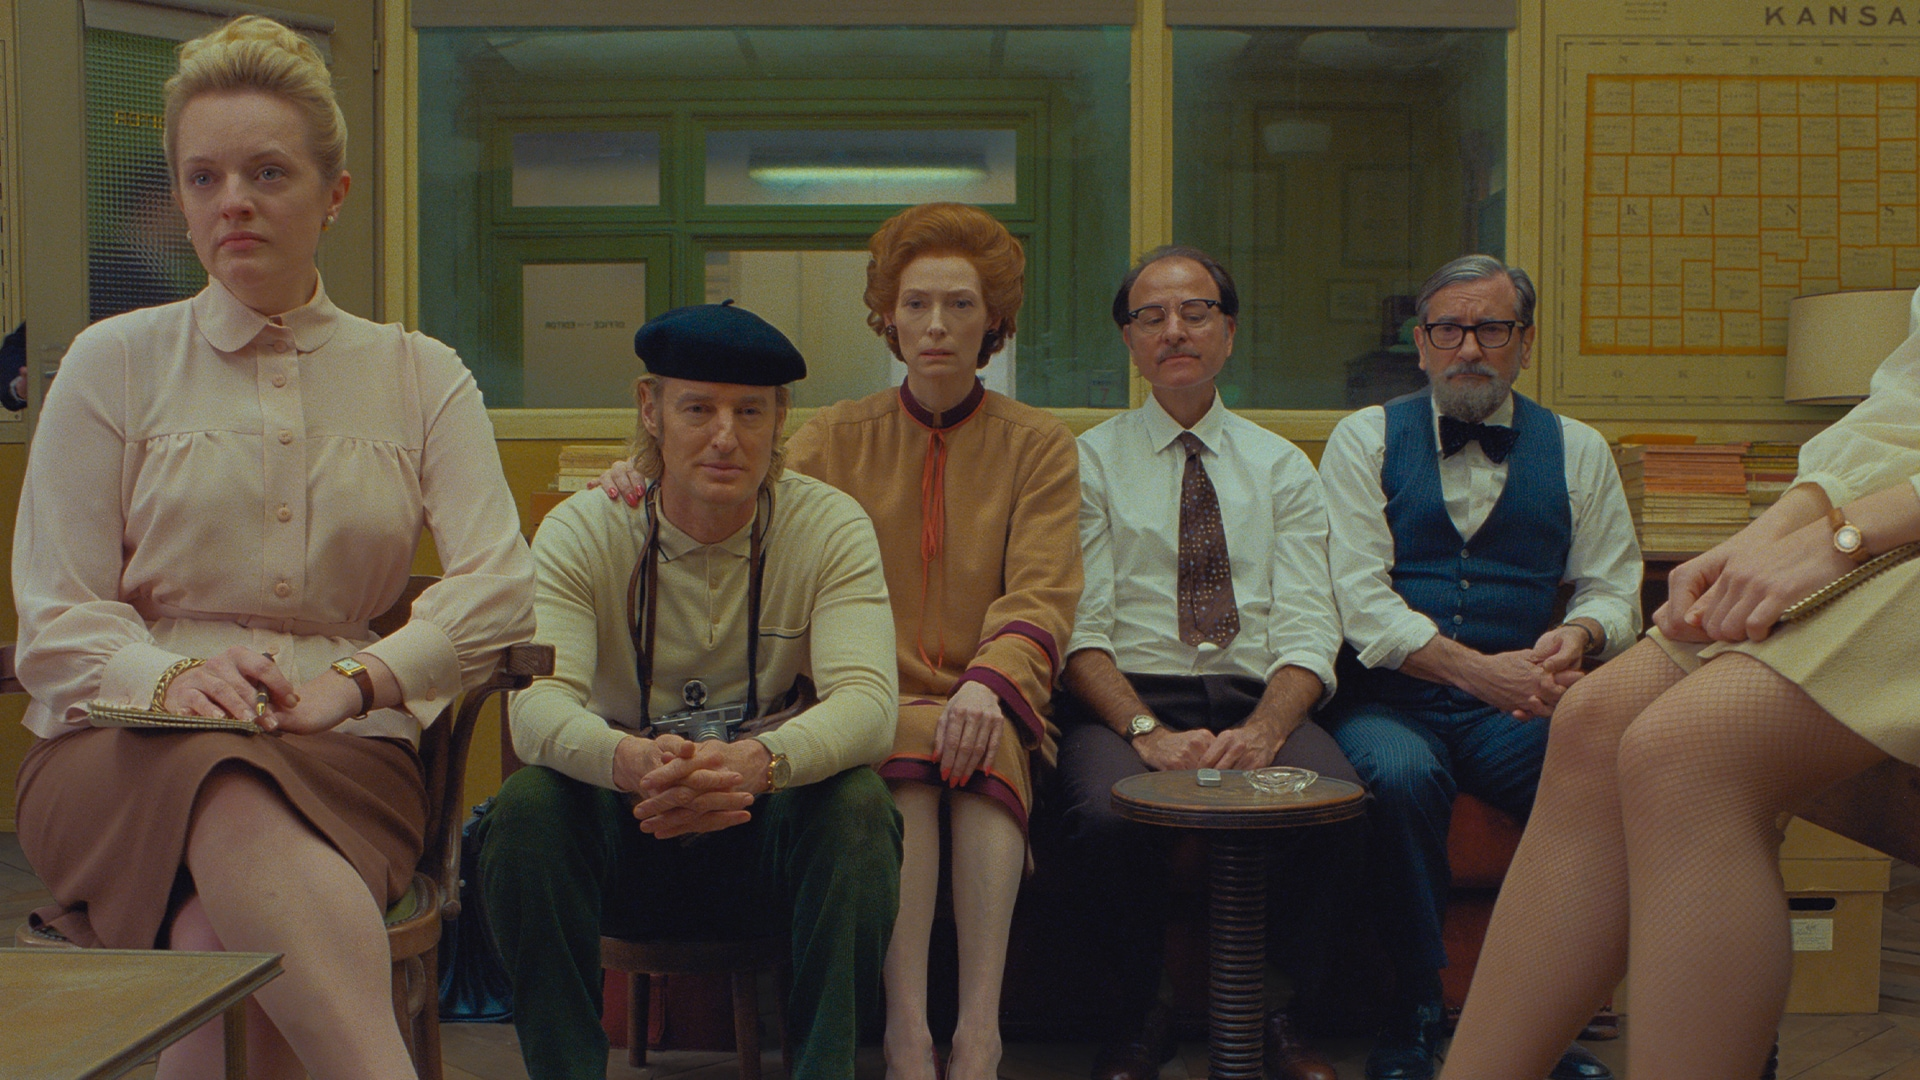 Elisabeth Moss, Owen Wilson, Tilda Swinton, Fisher Stevens and Griffin Dunne in the film The French Dispatch